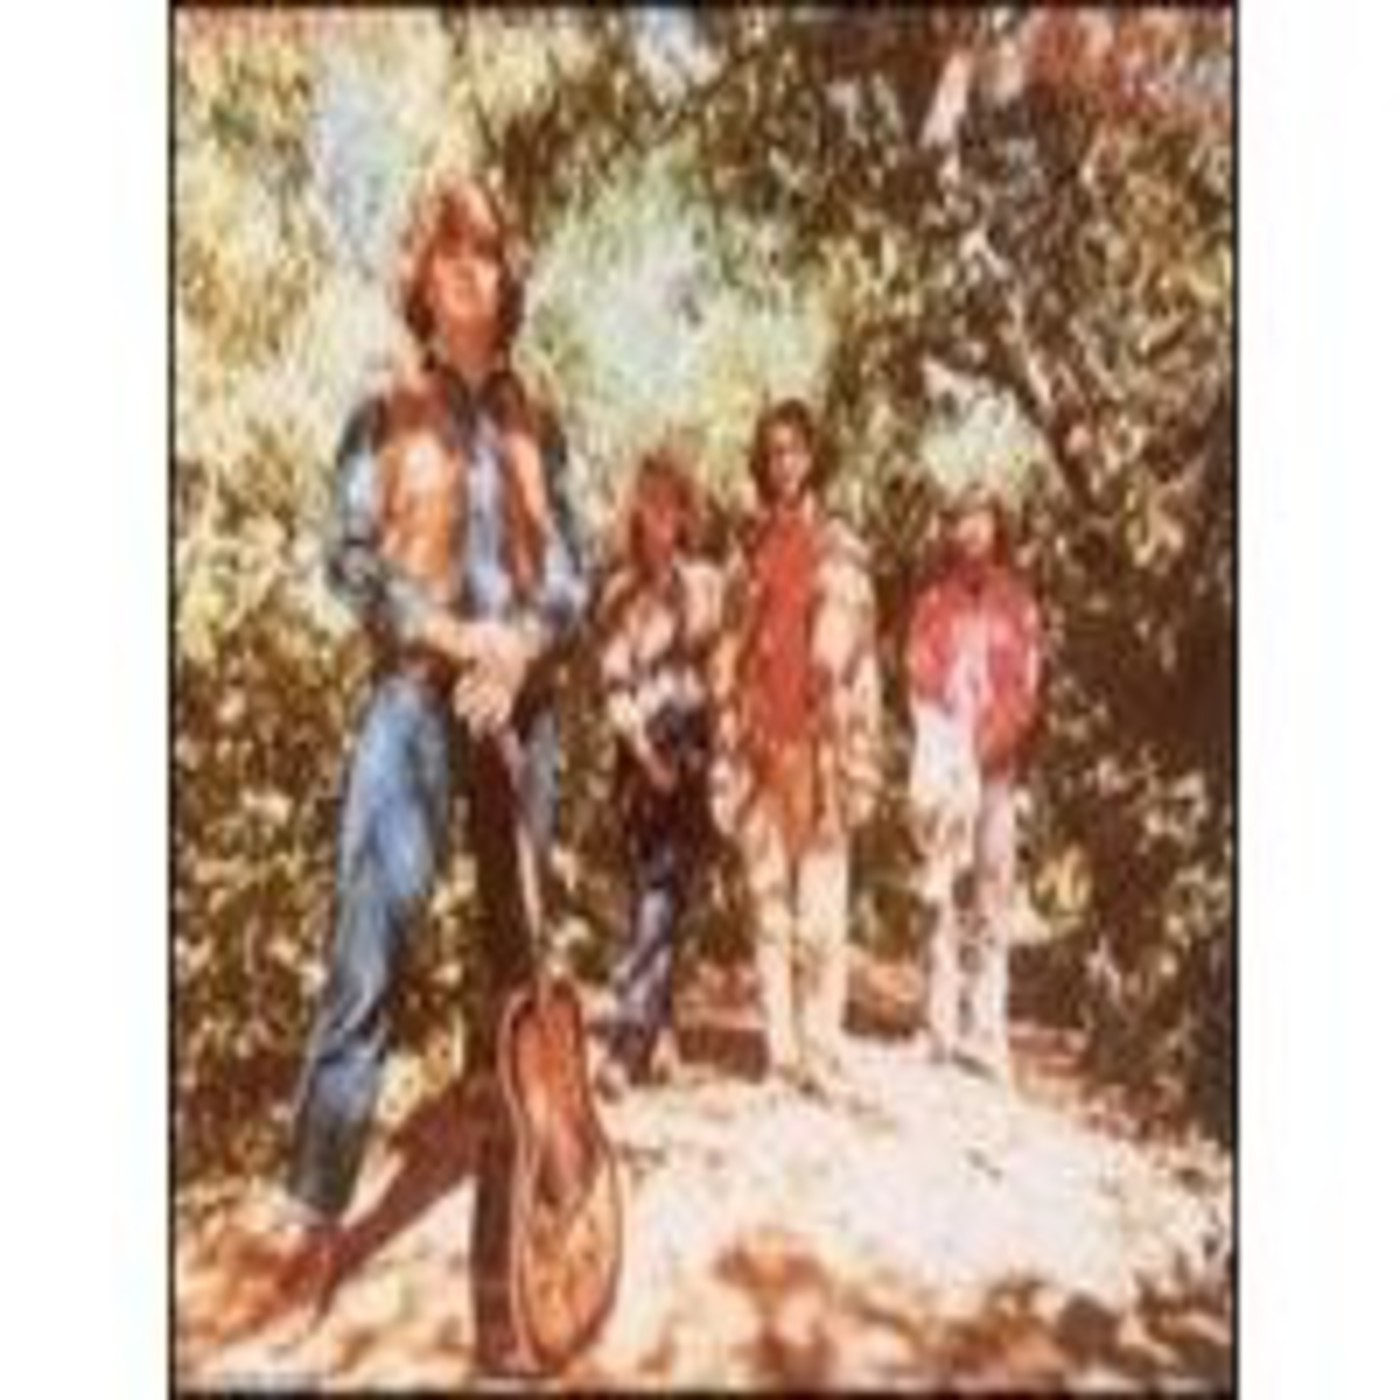 Creedence Clearwater Revival - Green River (1969)